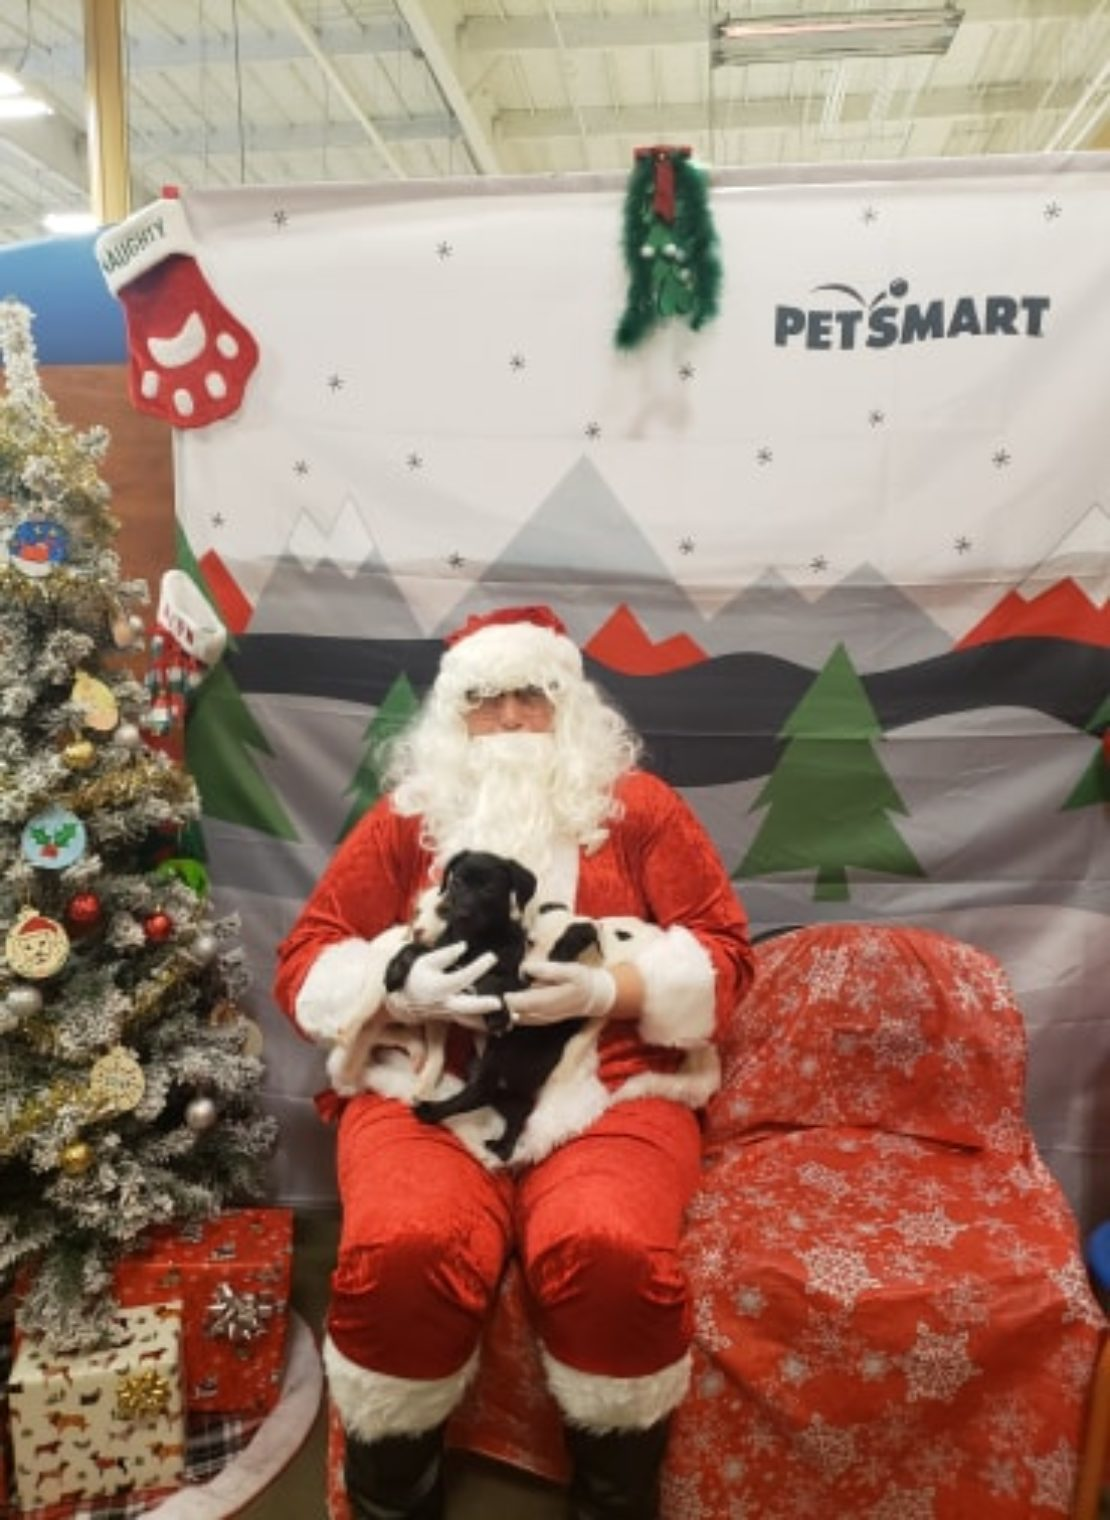 Santa Clauds holds a black puppy and a black-and-white puppy on his lap. A Christmas tree is on his right.